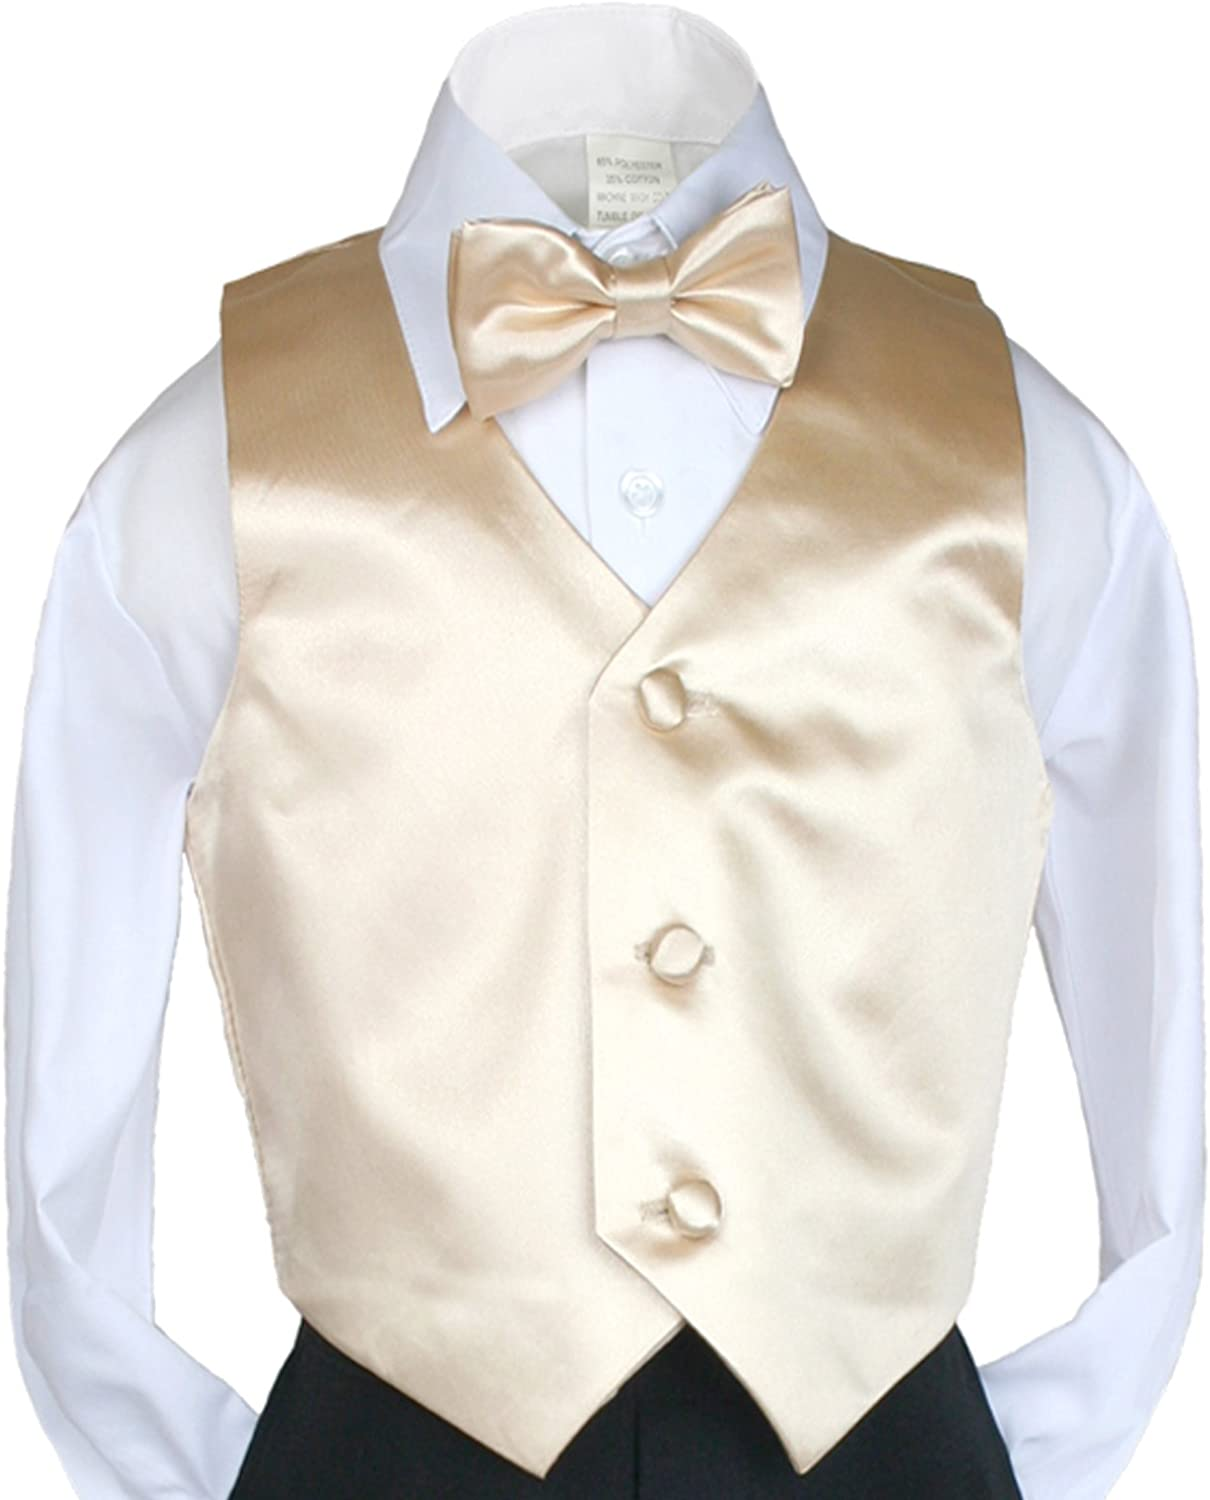 Free Lilac Tie 5-14 New Boy Toddler Kid Formal Wedding Party Tuxedo Suit Vest